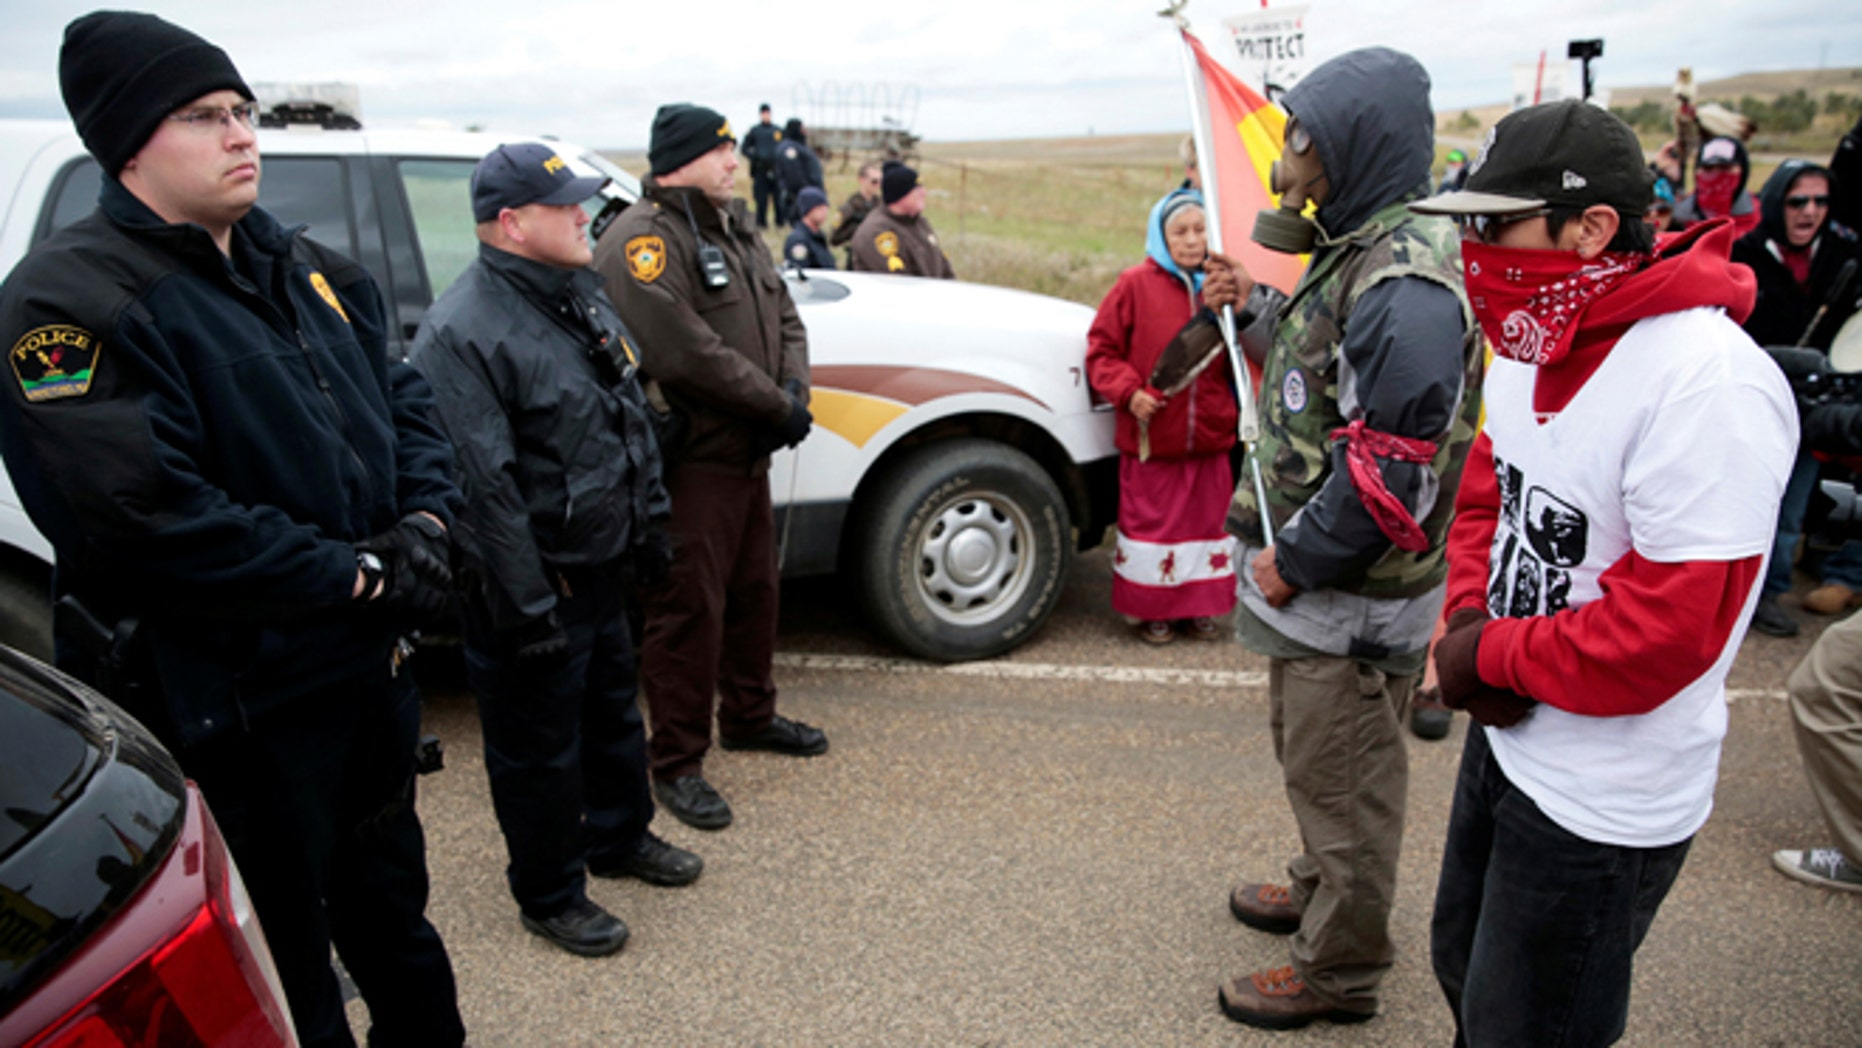 Oct. 5: Dakota Access Pipeline protesters square off against police between the Standing Rock Reservation and the pipeline route outside the little town of Saint Anthony, North Dakota,